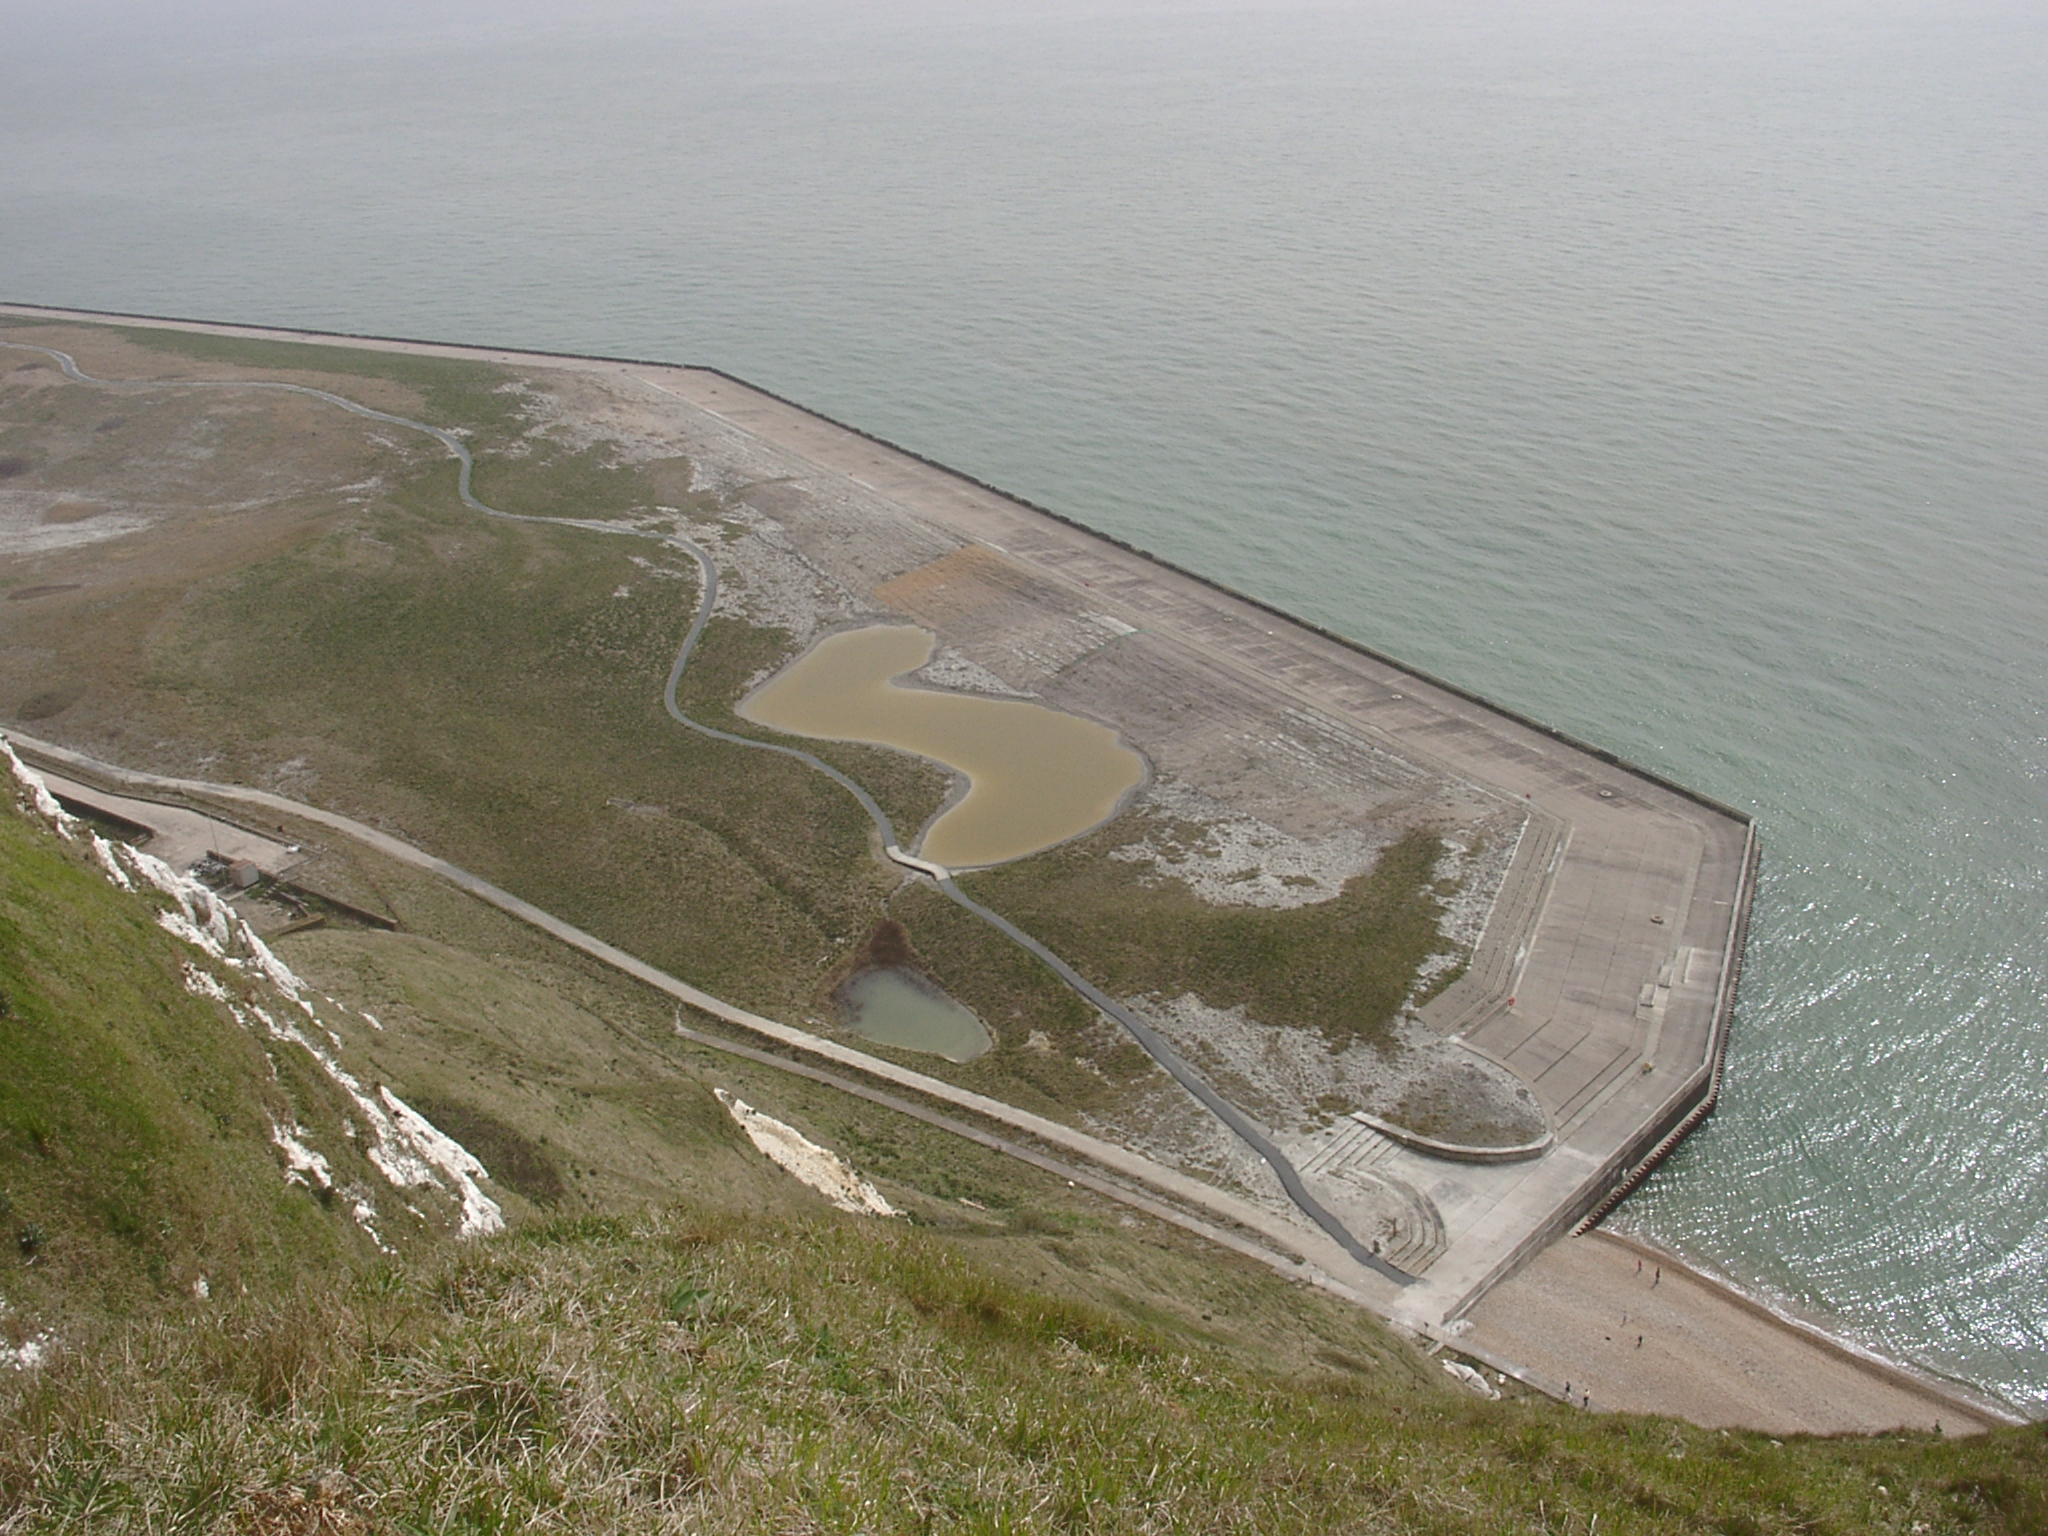 Samphire Hoe and Abbot's Cliff